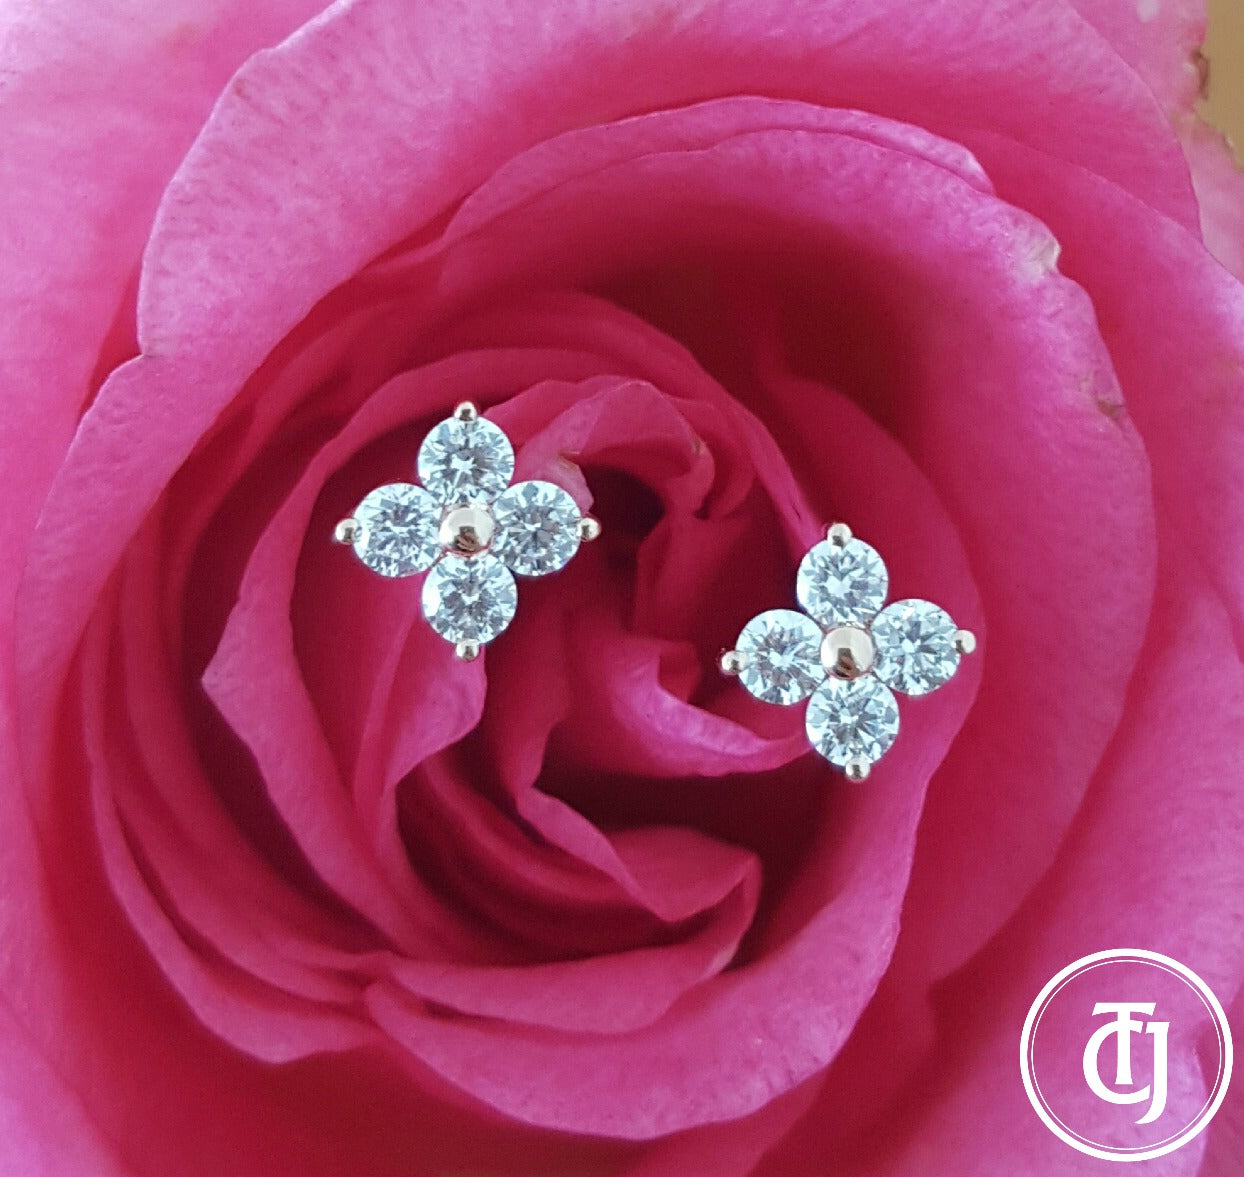 0.24tcw G/SI1 Diamond Stud 'Florette' Earrings in 18k 18ct Rose Gold by CTJ